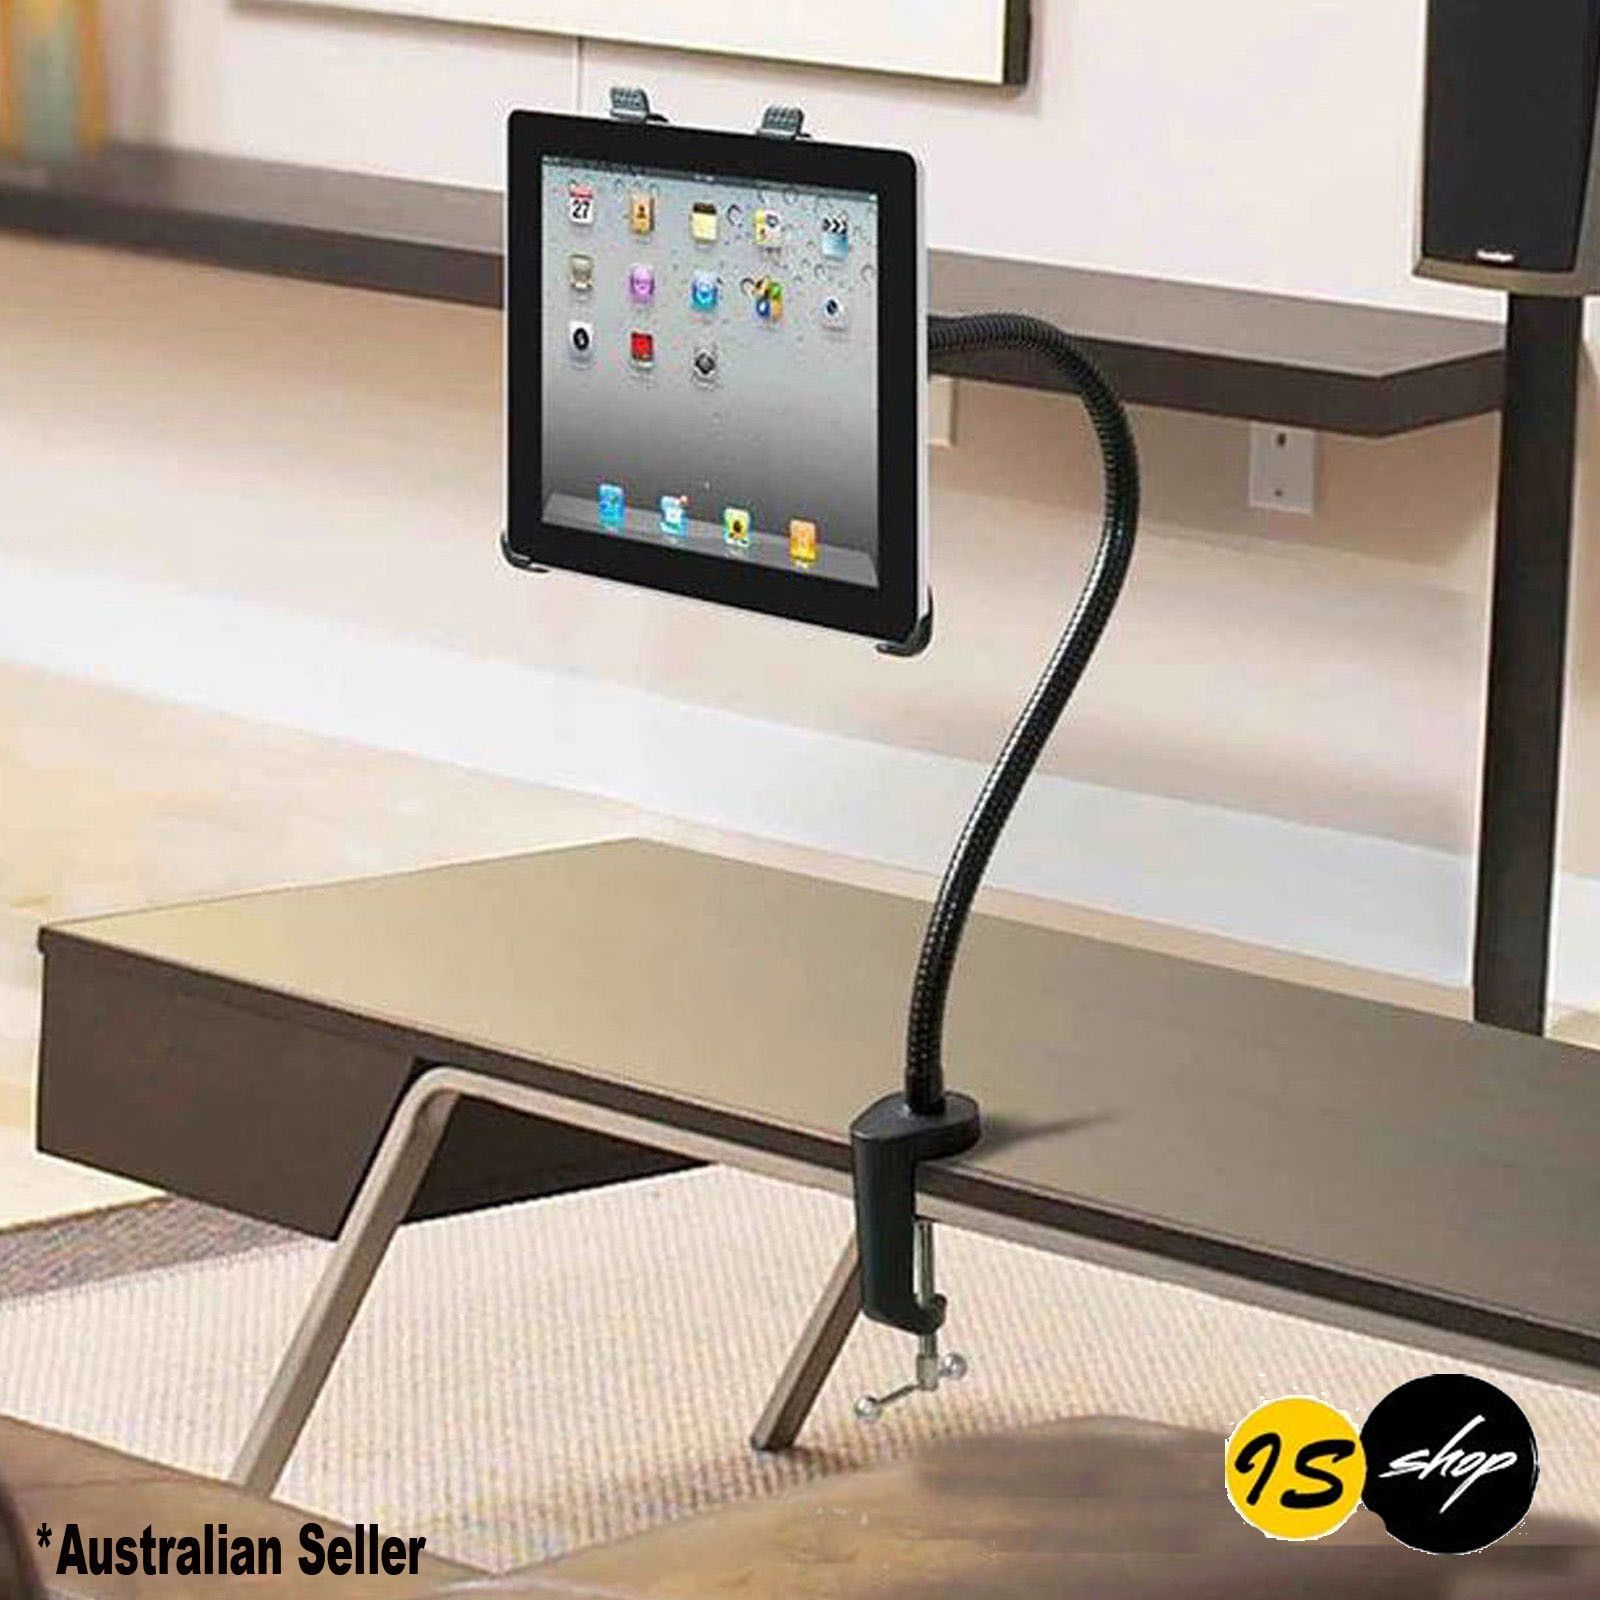 360 Rotatable Lazy Bed Desk Mount Holder For Ipad Stand 2 3 4 Air Mini Tablet Tisch Und Stuhle Stuhle